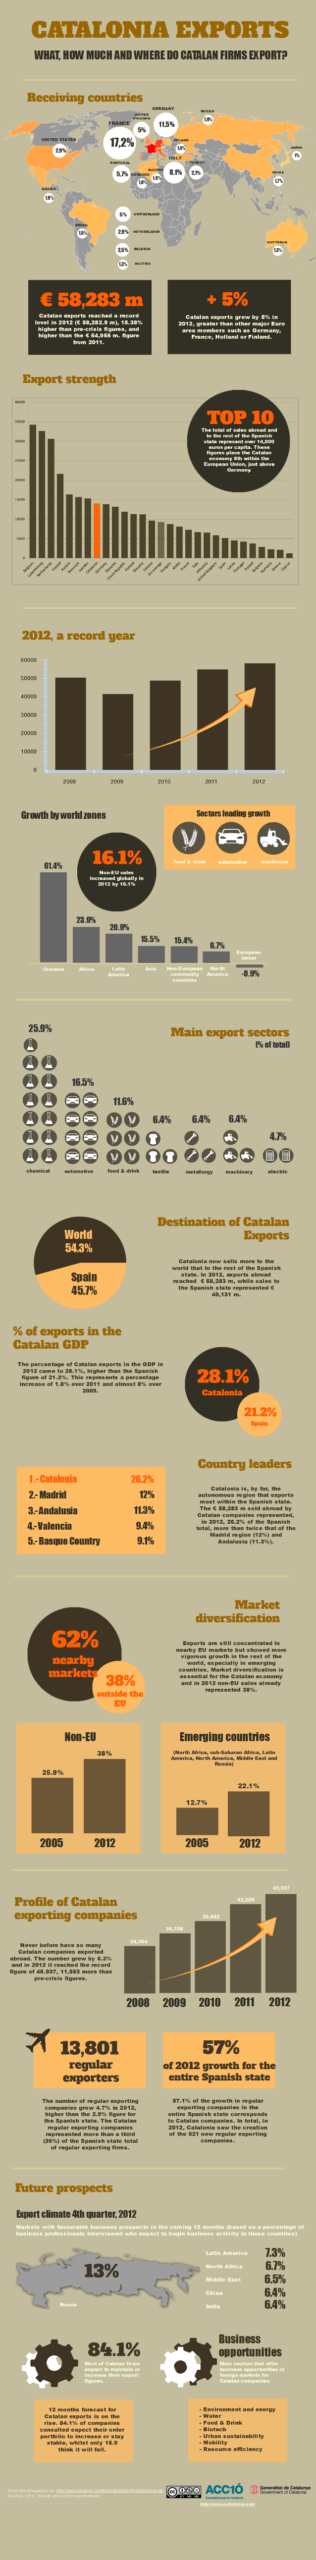 Catalonia Exports infographic